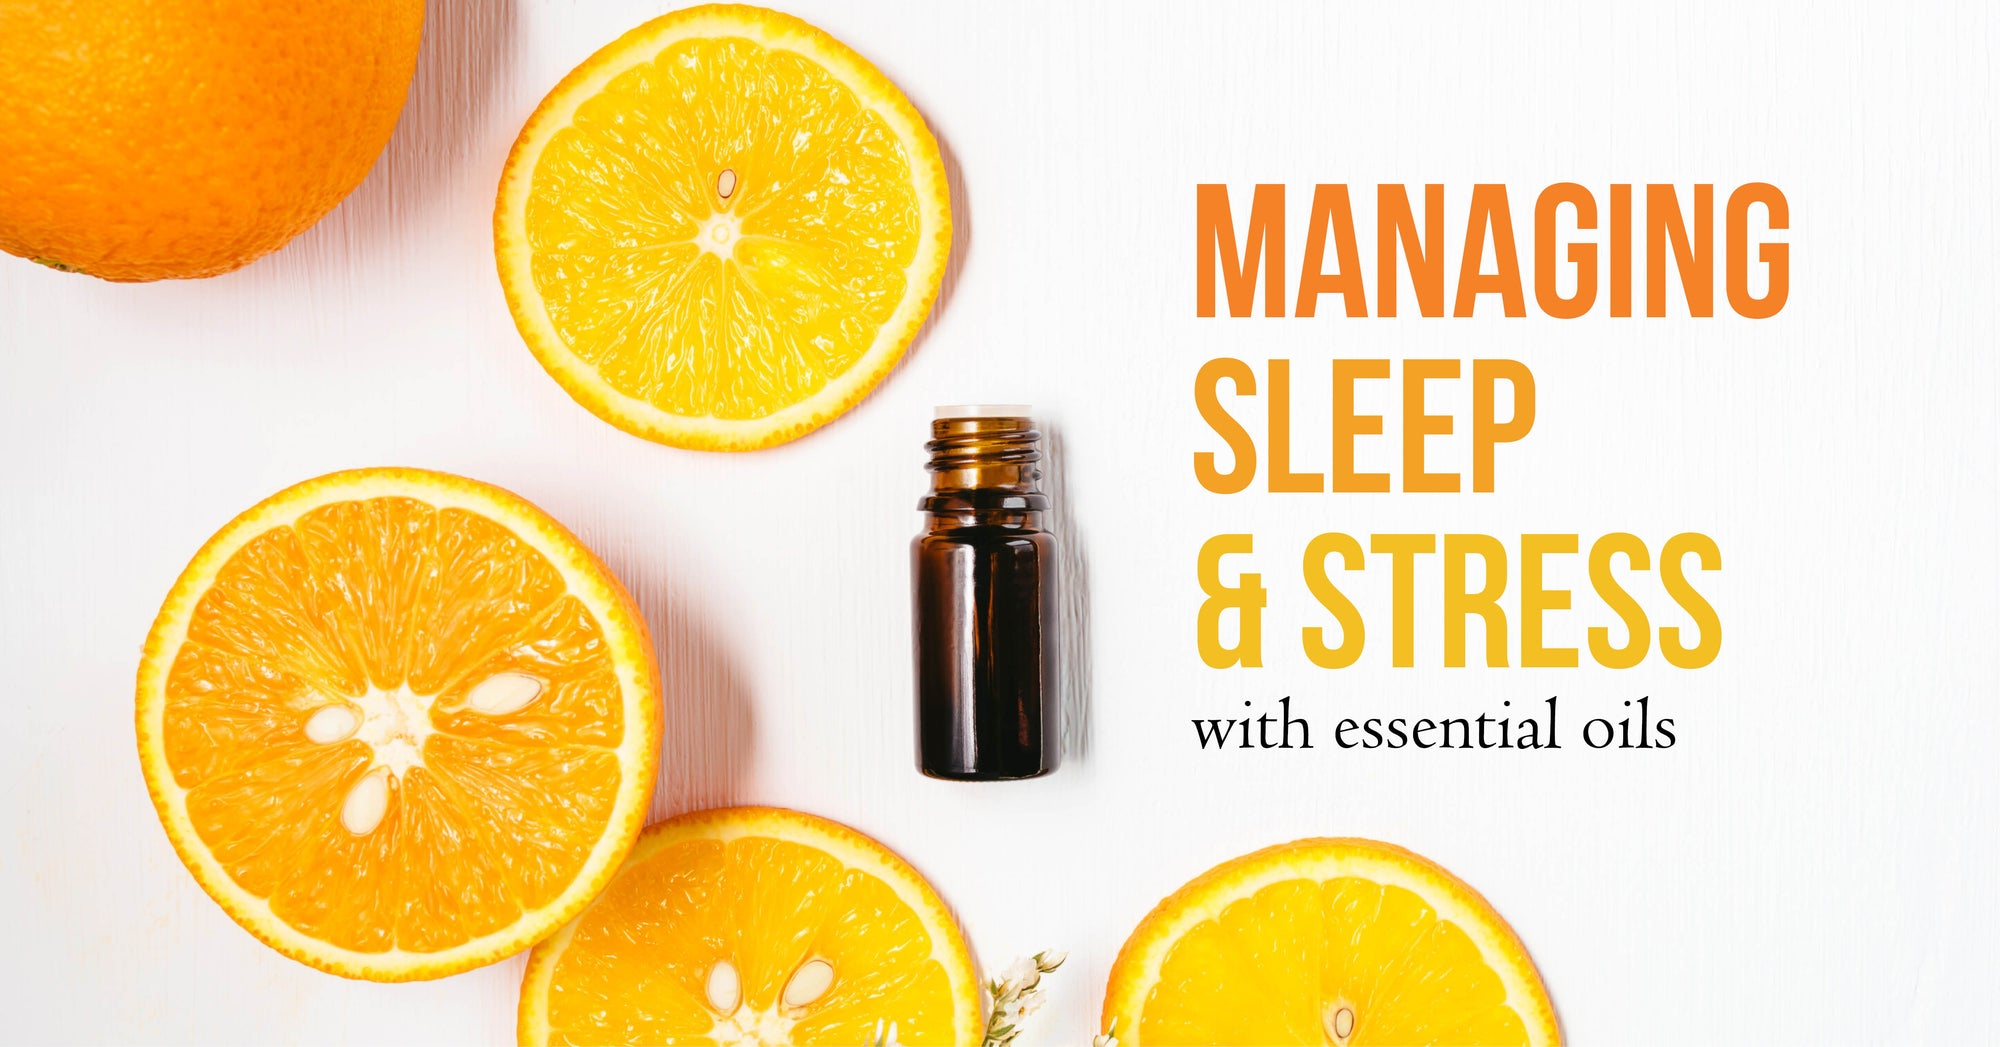 Managing Sleep and Stress with Essential Oils